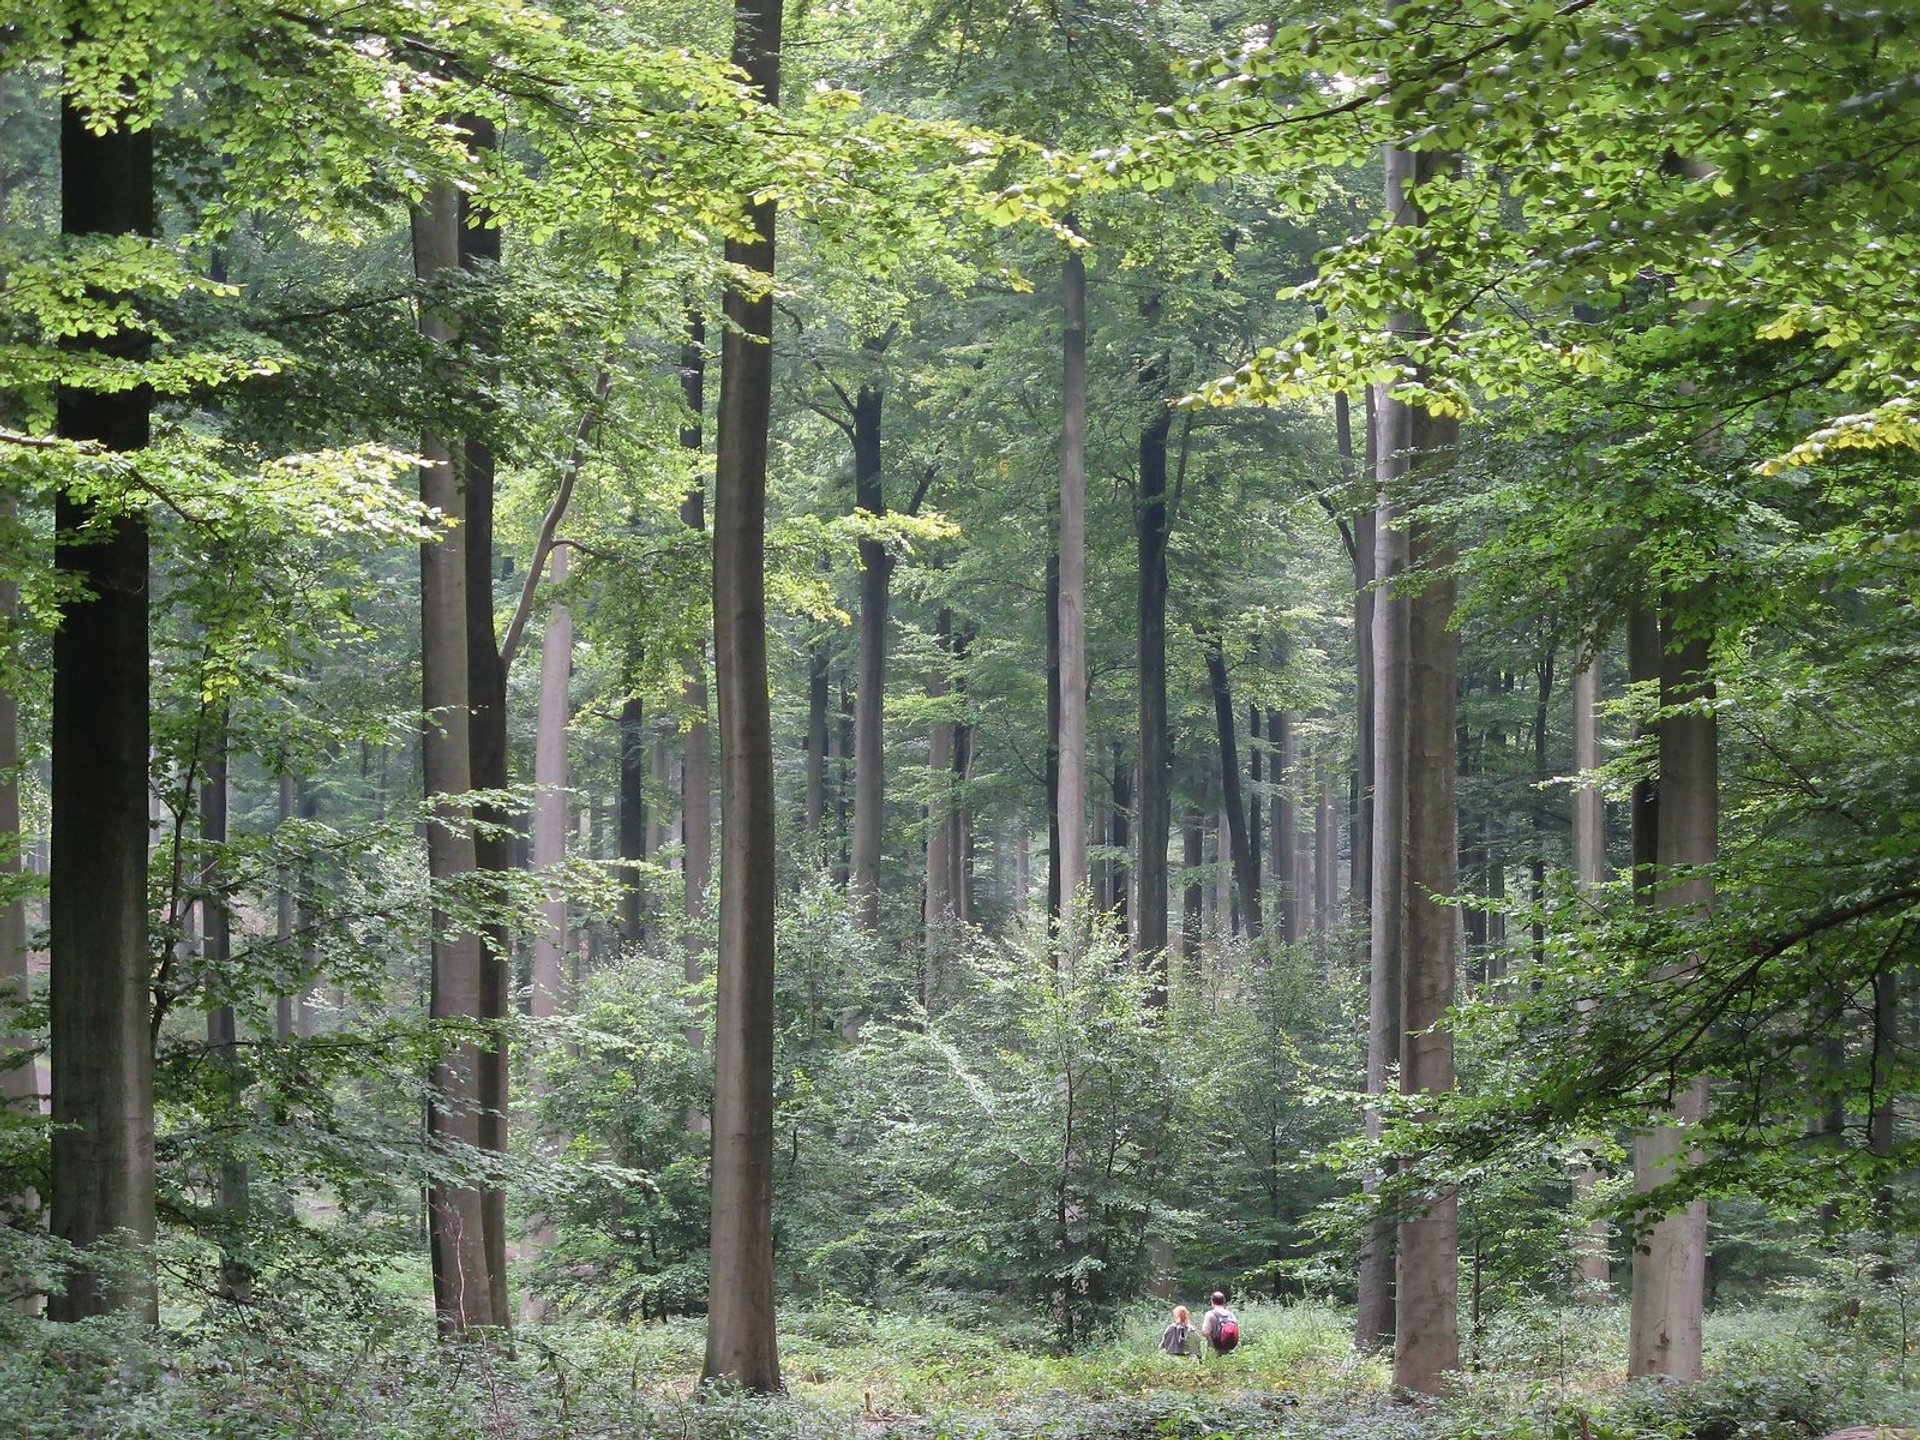 Sonian Forest (Zoniënwoud) in Brussels 2020 - Best Time